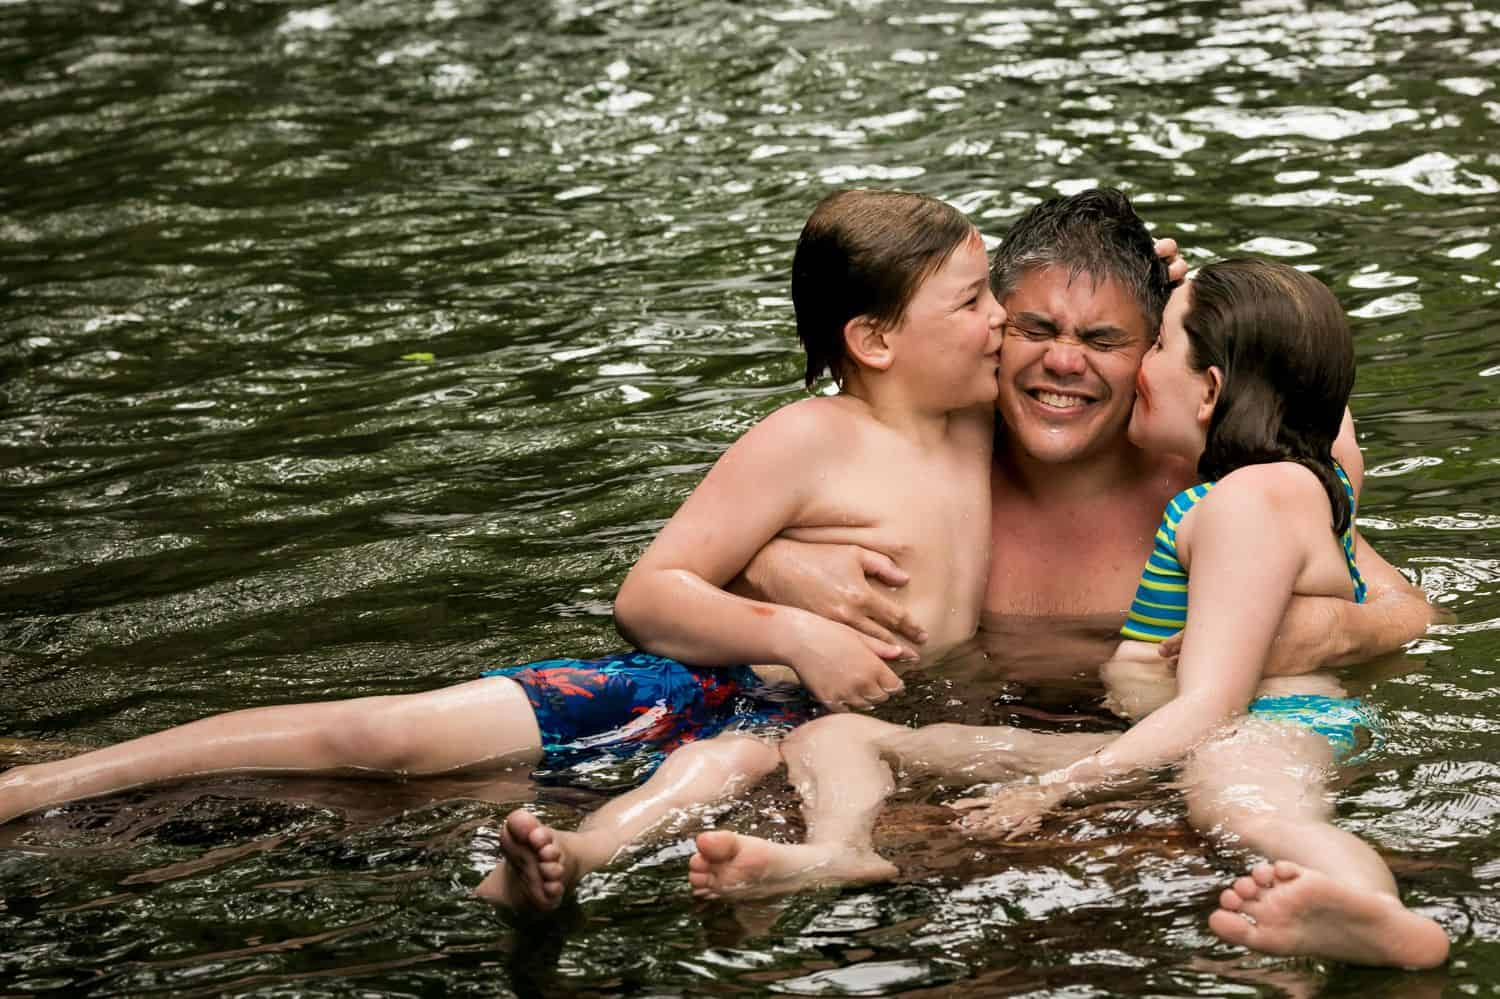 Kids kiss dad on the cheeks as they swim in the lake.